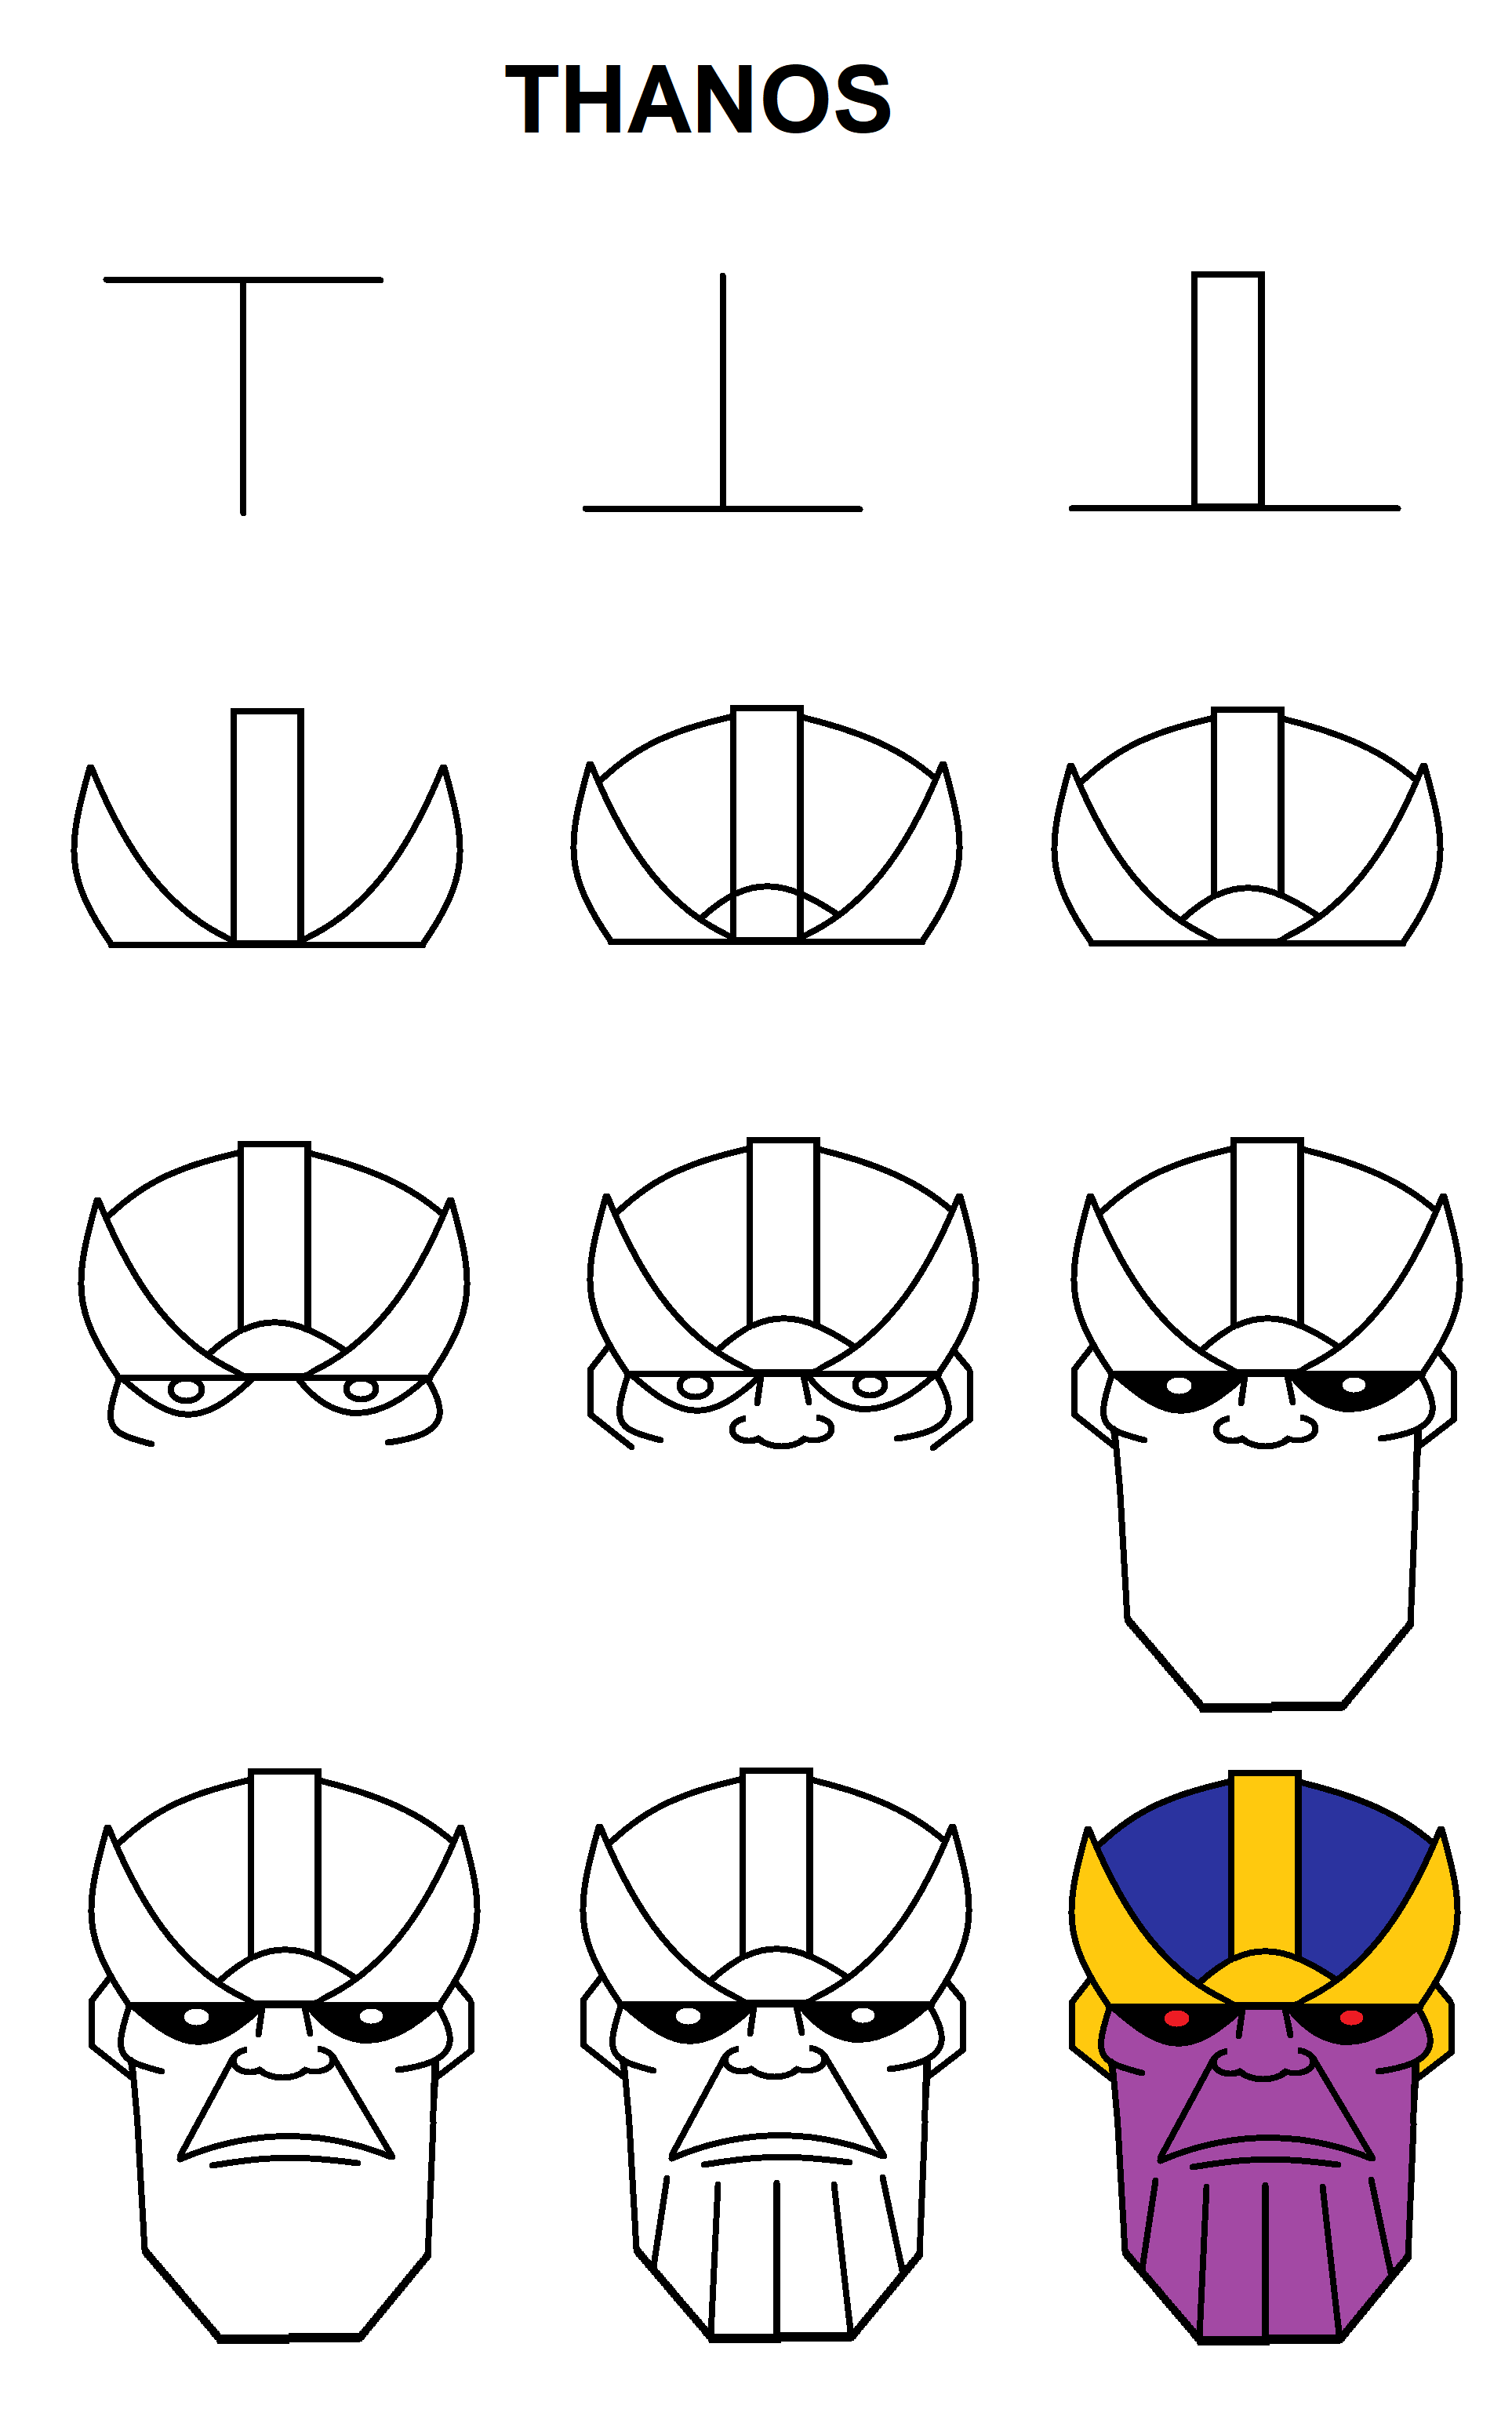 Step By Step To Draw Thanos With The Letter T